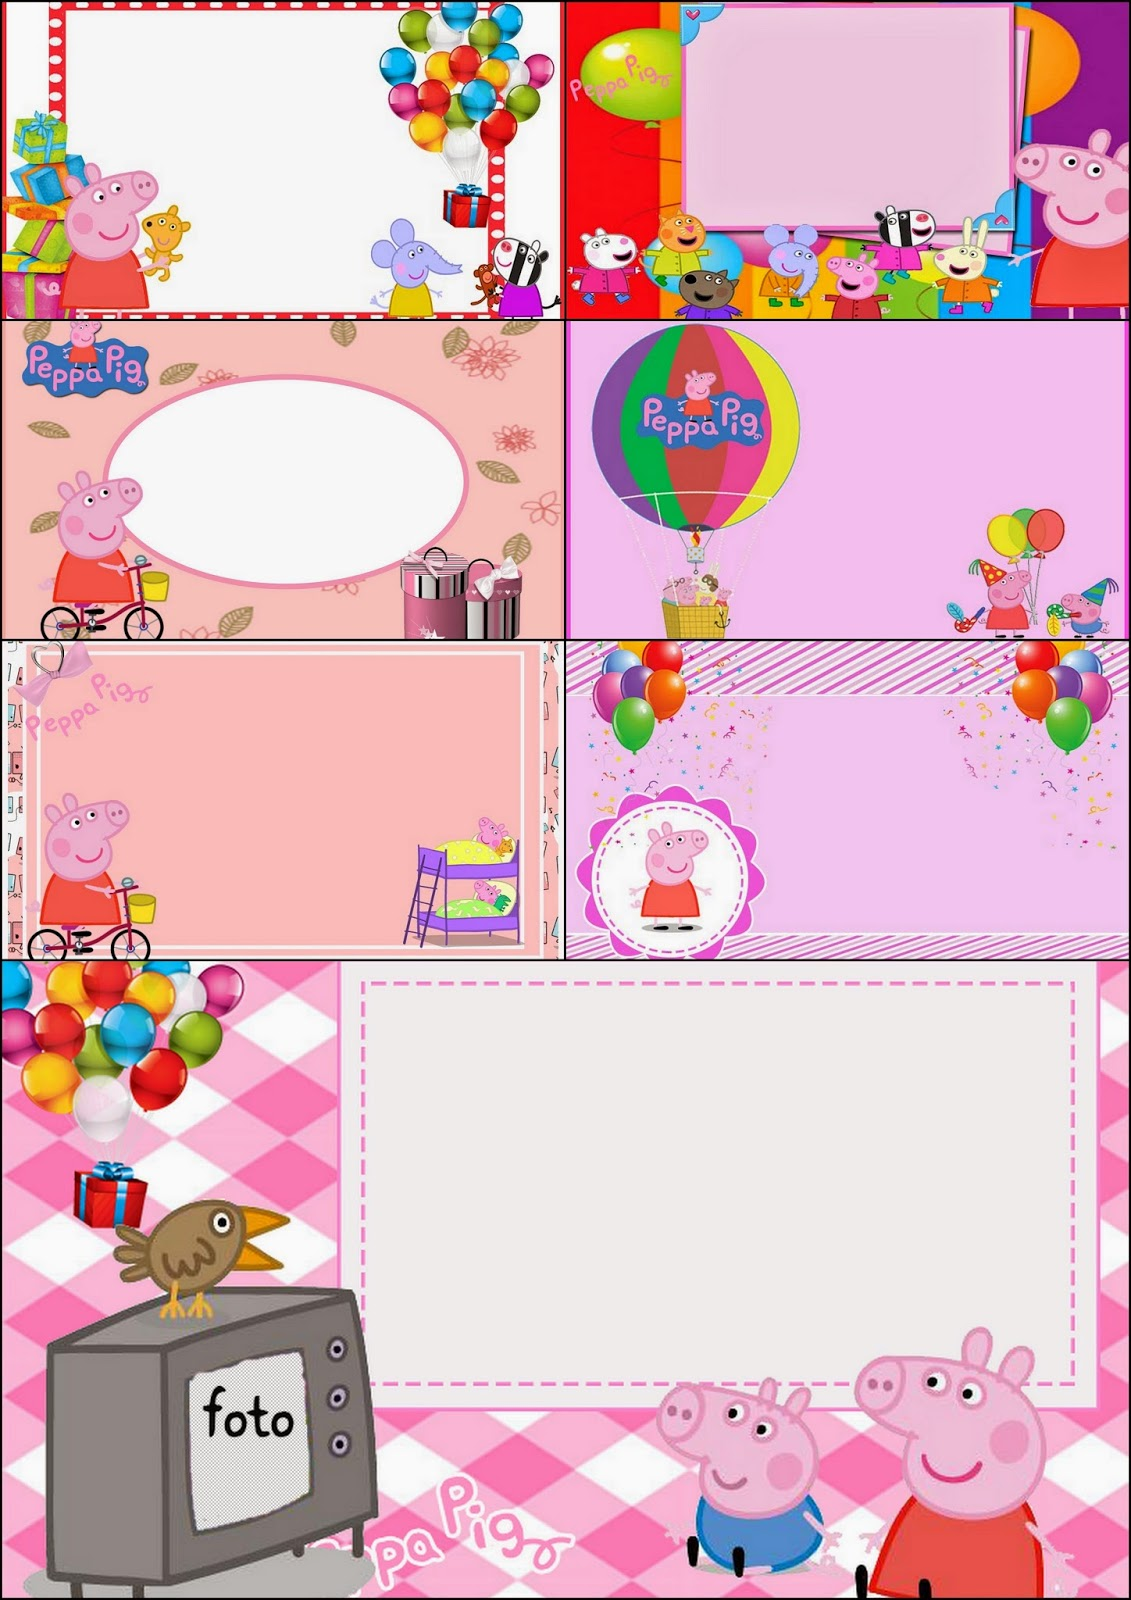 Peppa Pig: Free Printable Invitations, Labels or Cards.